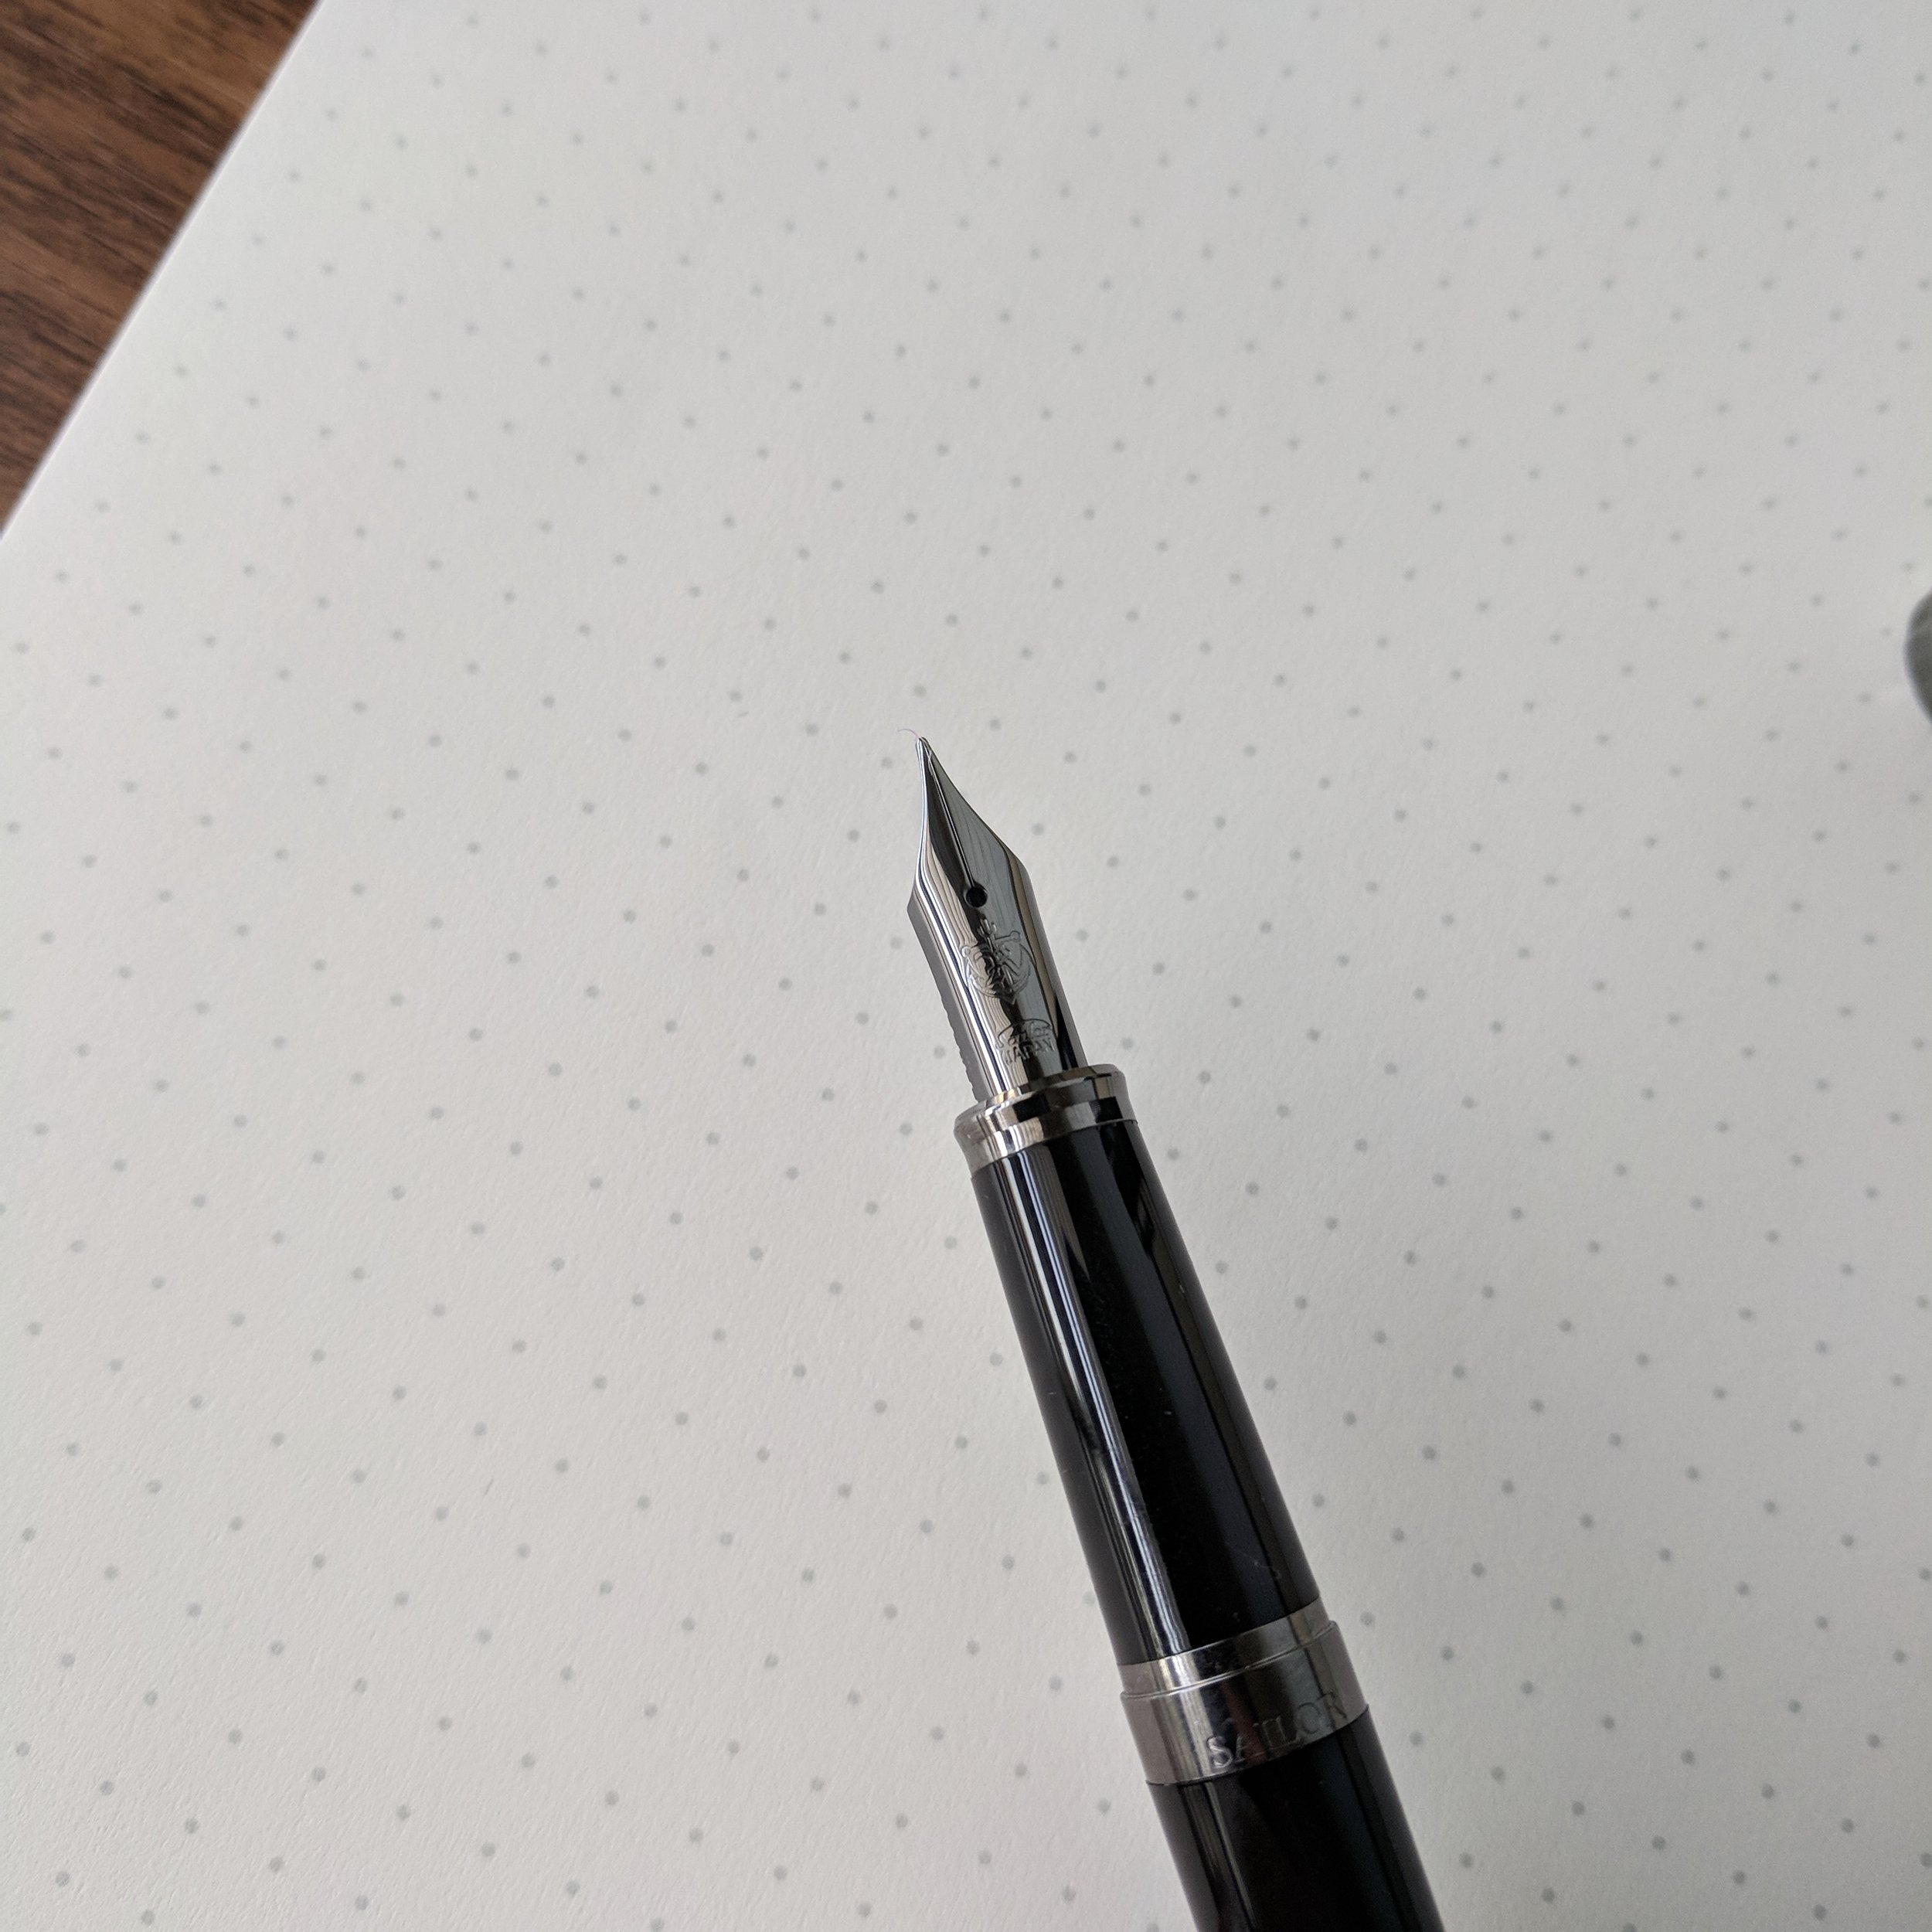 The nib on the Sailor Reglus is slightly smaller than the typical 1911/Pro Gear nibs, and has a different, slightly more understated, engraving. I like the look!